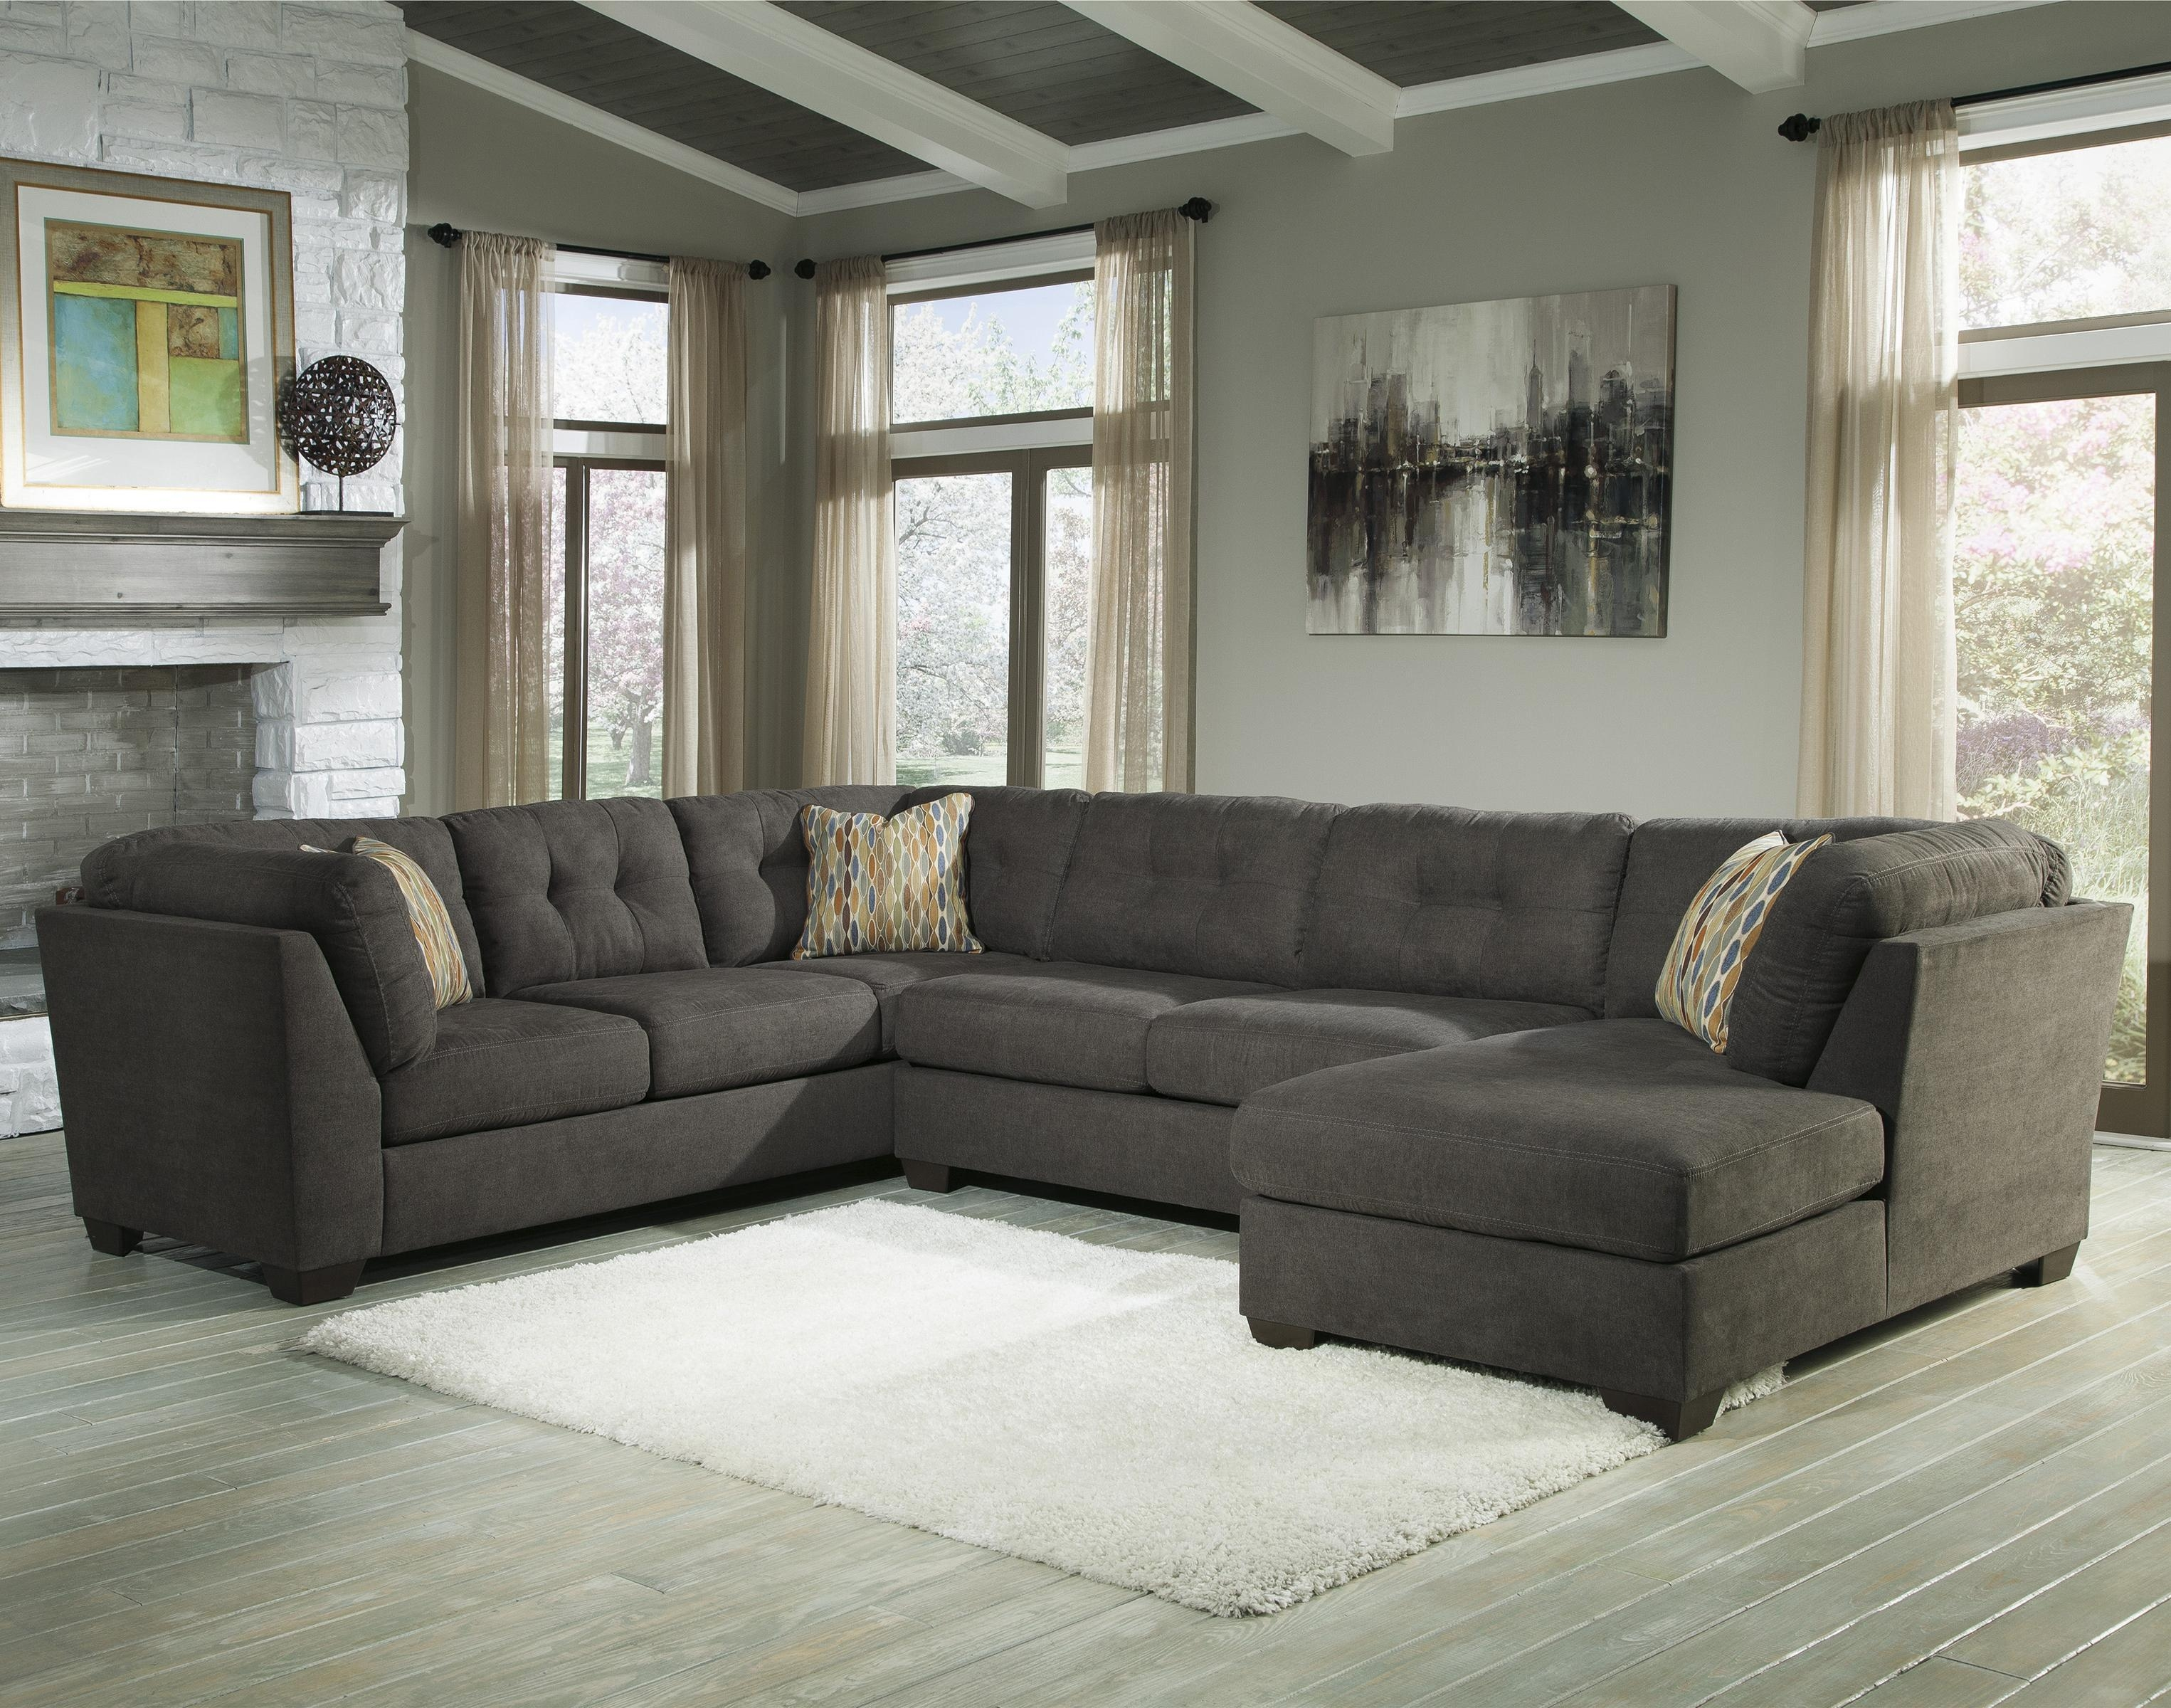 20 Best Ideas Individual Piece Sectional Sofas Sofa Ideas